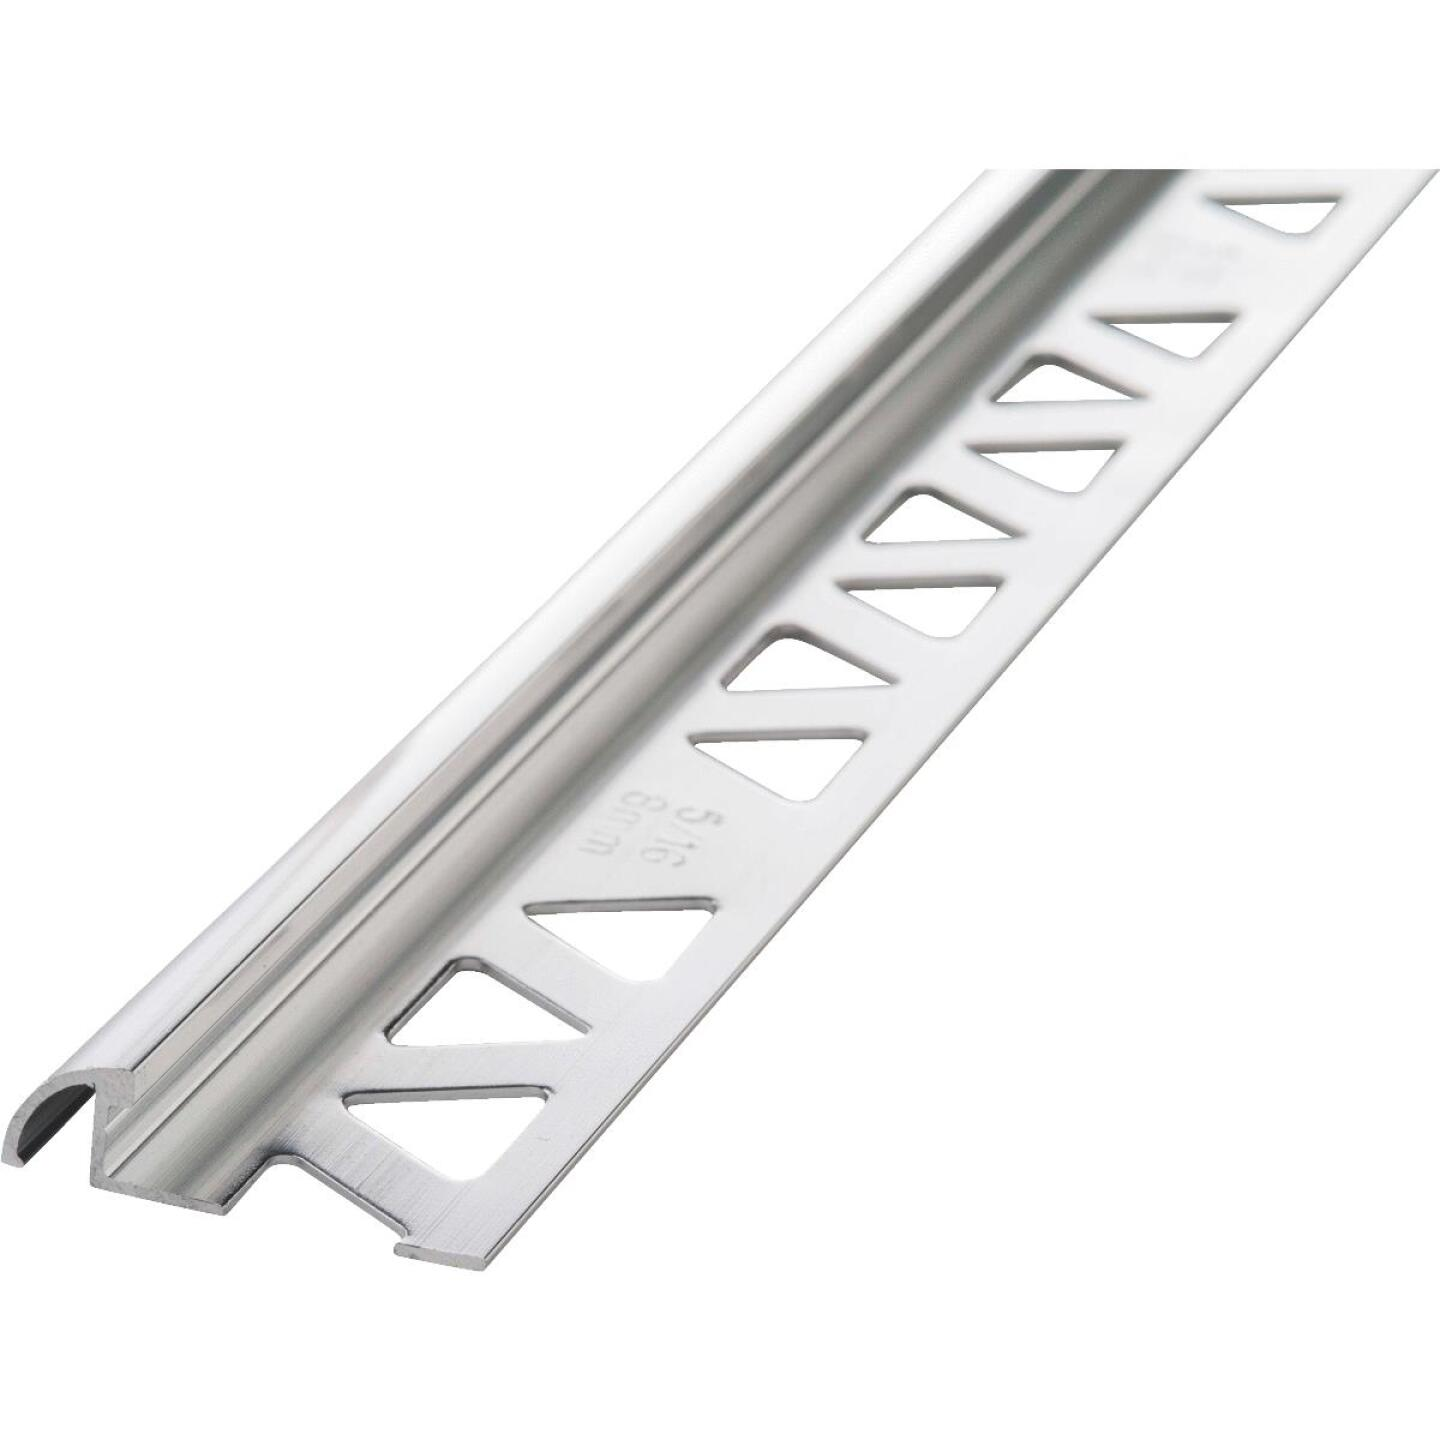 M D Building Products 5/16 In. x 8 Ft. Bright Clear Aluminum Bullnose Tile Edging Image 1